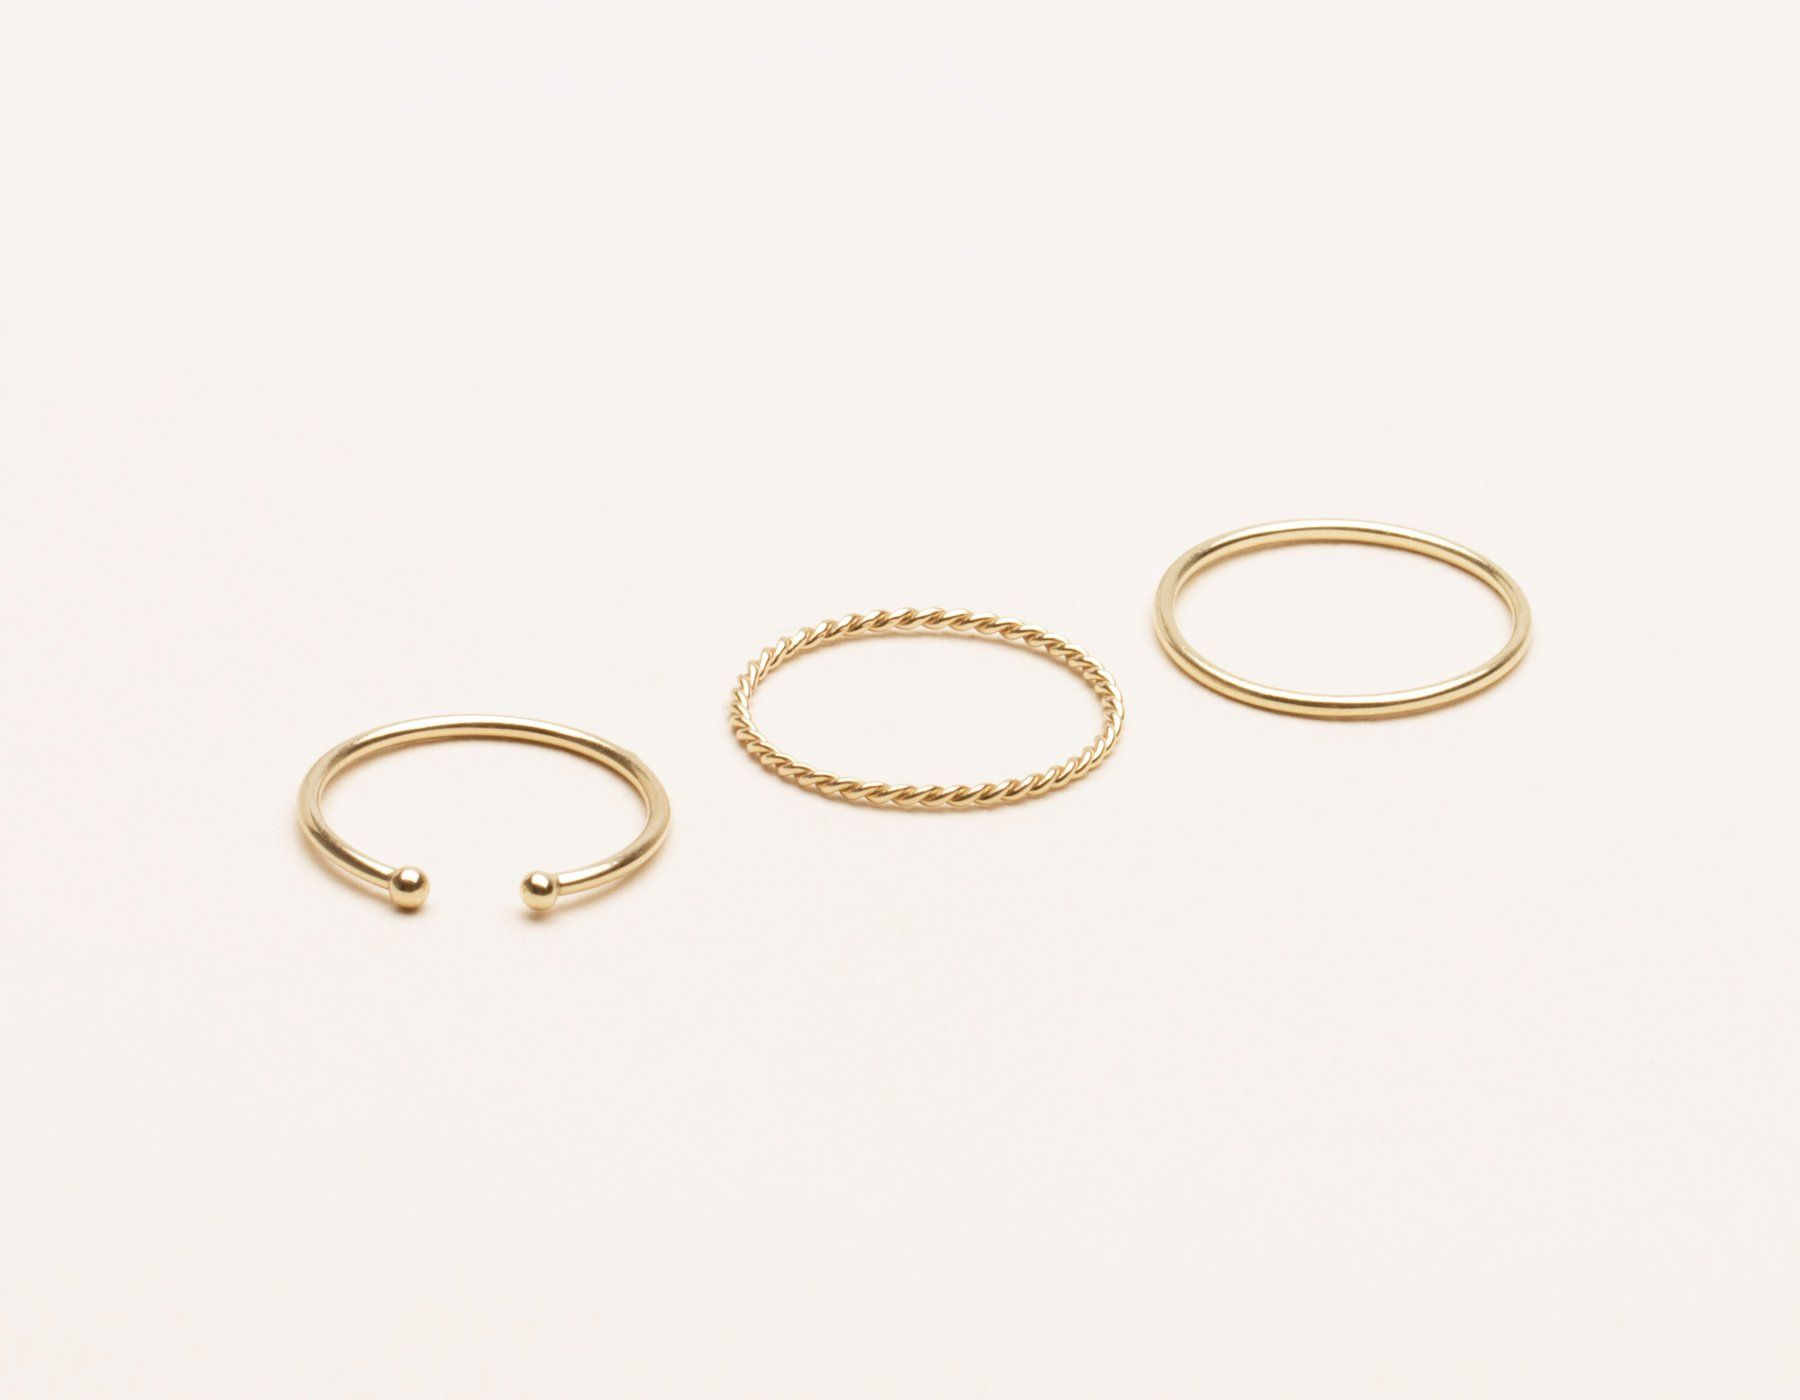 422bf480507680 Minimal Vrai & Oro 14k Yellow Gold Stacking Rings. vrai and Oro delicate  14k solid gold classic simple stack ...